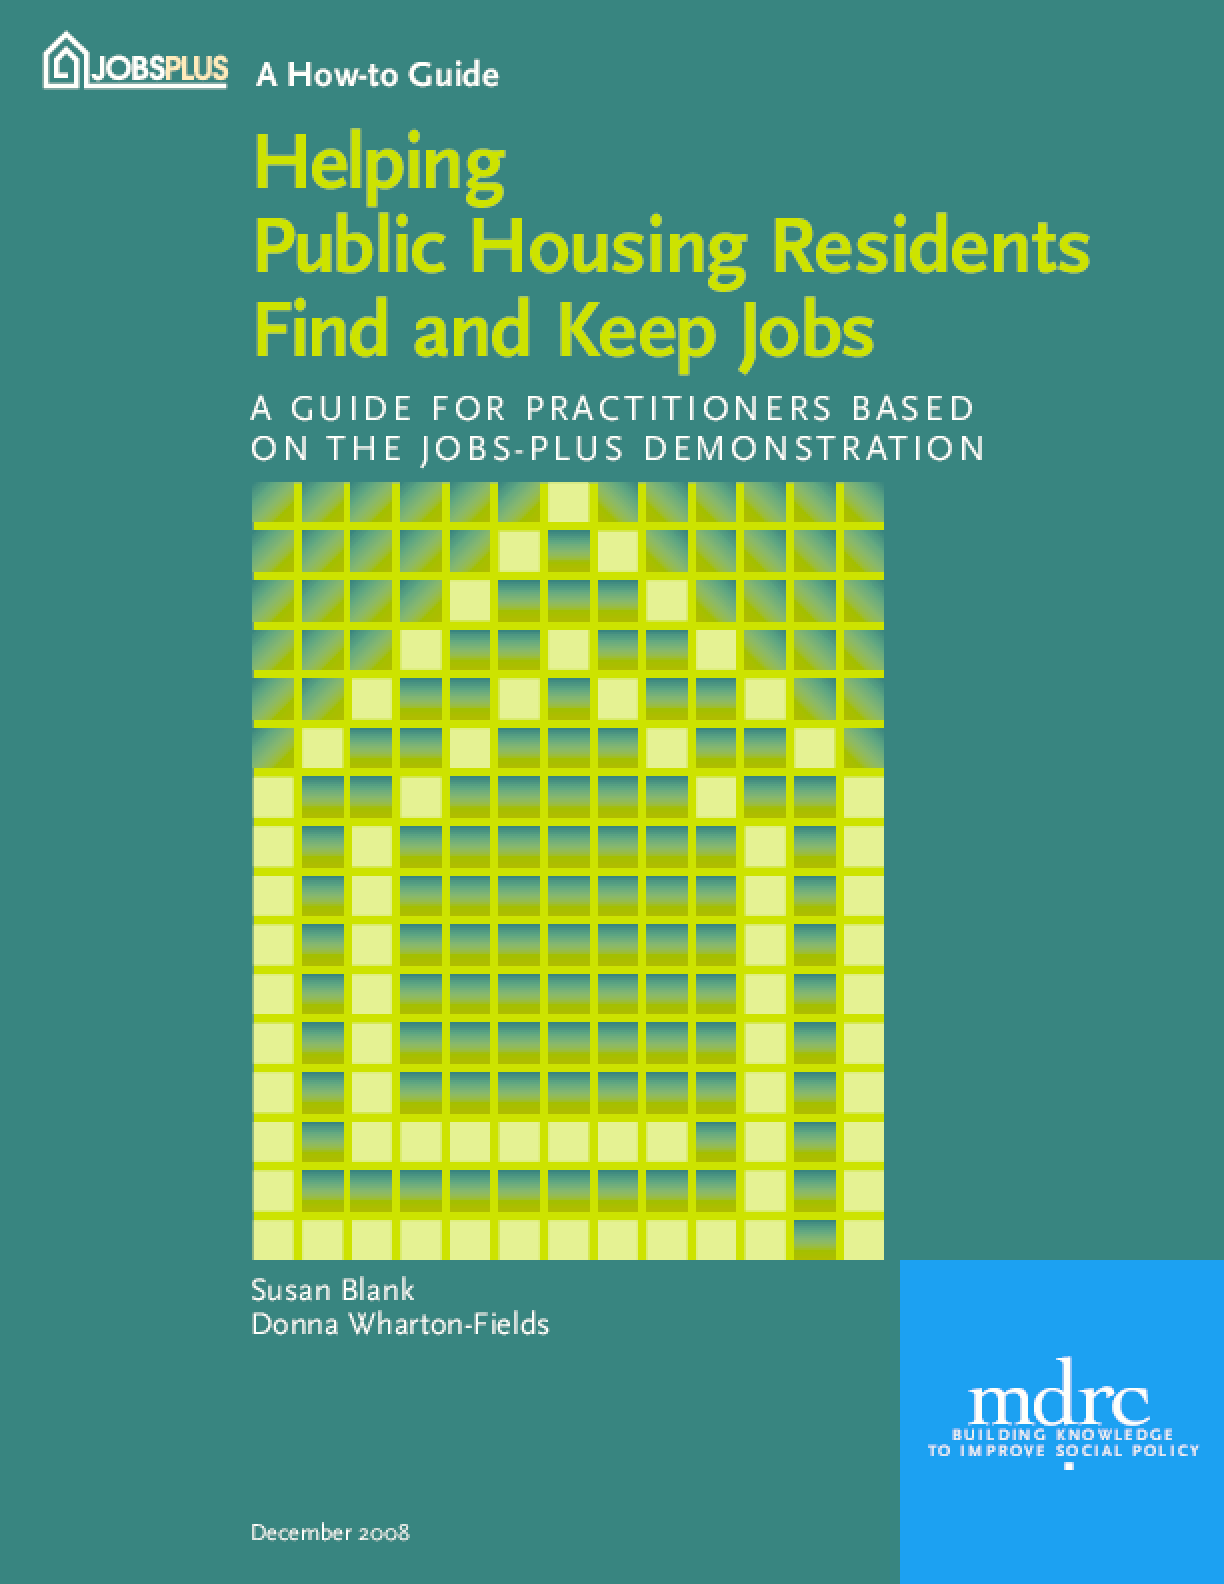 Helping Public Housing Residents Find and Keep Jobs: A Guide for Practitioners Based on the Jobs-Plus Demonstration